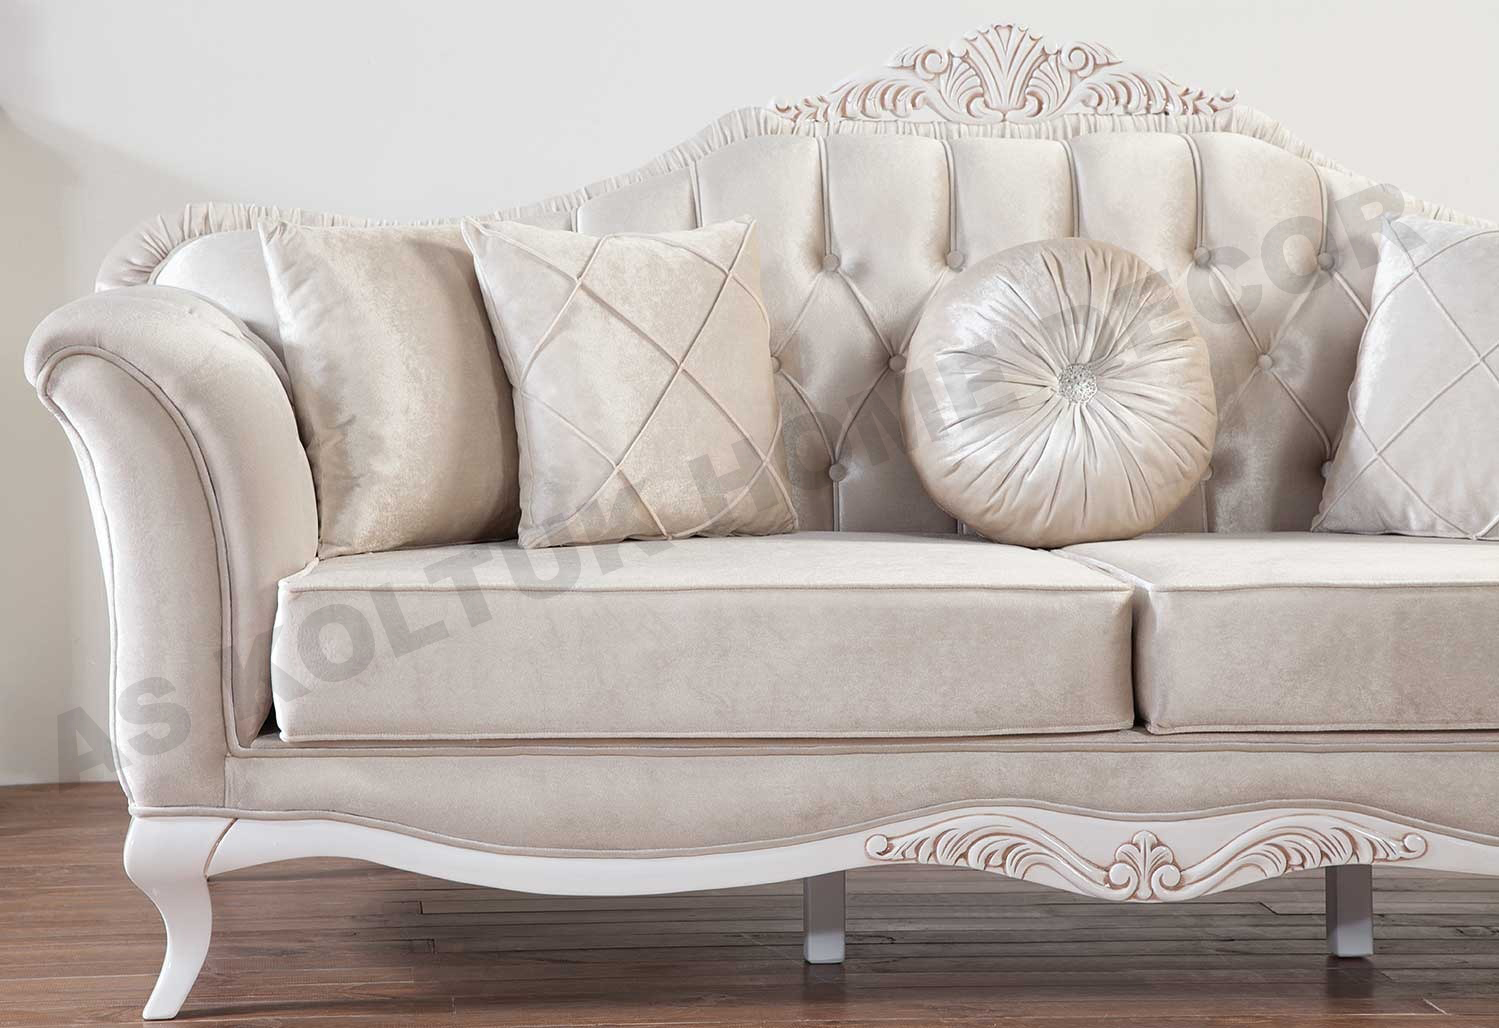 as koltuk home decor for sale broken white elegant classic sofa set. Black Bedroom Furniture Sets. Home Design Ideas